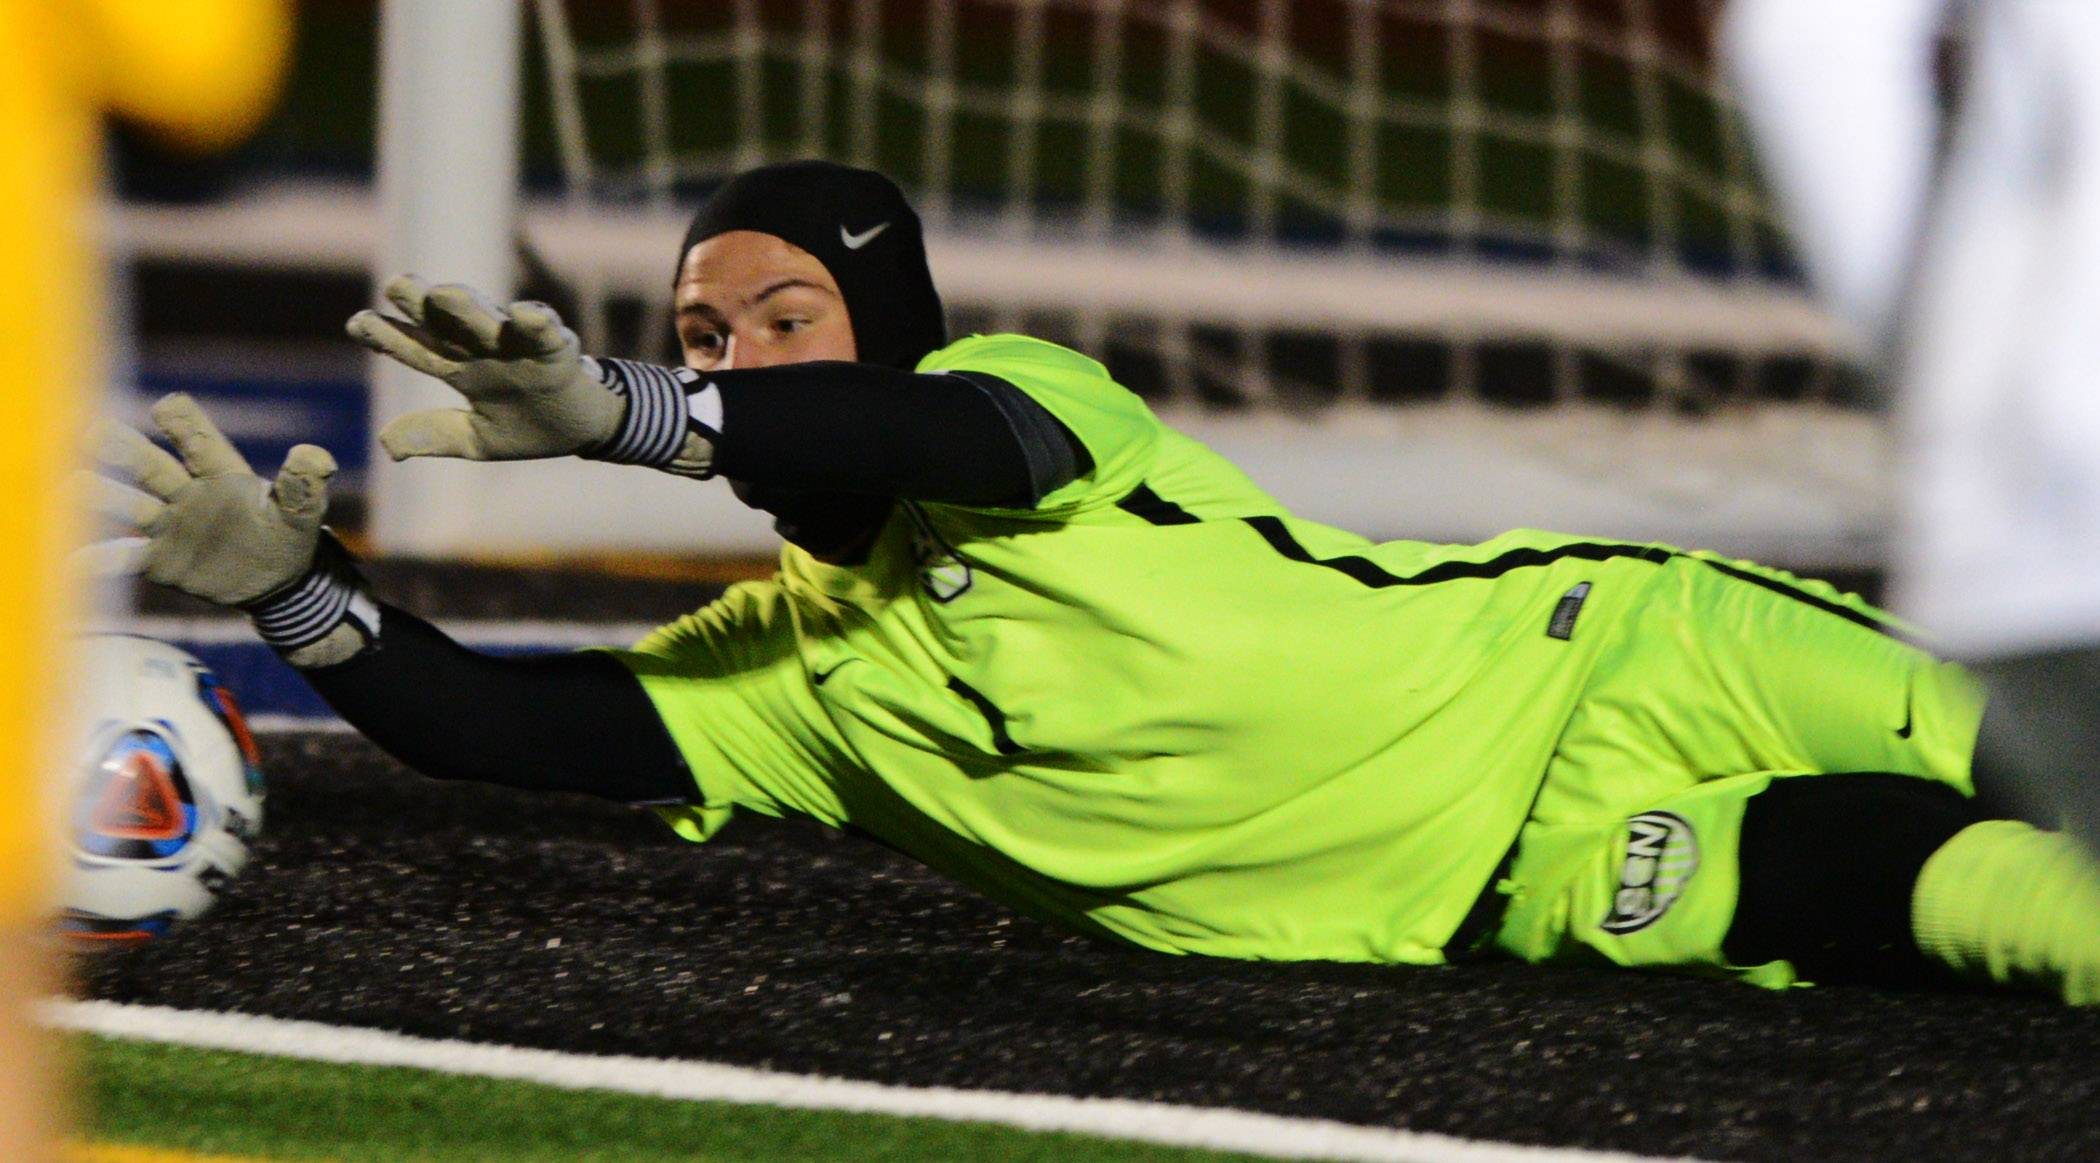 St. Charles North goalkeeper Piercarlo Ricossa makes a diving save during the Class 3A boys soccer supersectional against Jacobs in St. Charles Tuesday. The North Stars will take on defending champion Naperville North Friday at 7 p.m. in a Class 3A state semifinal at Hoffman Estates High School.